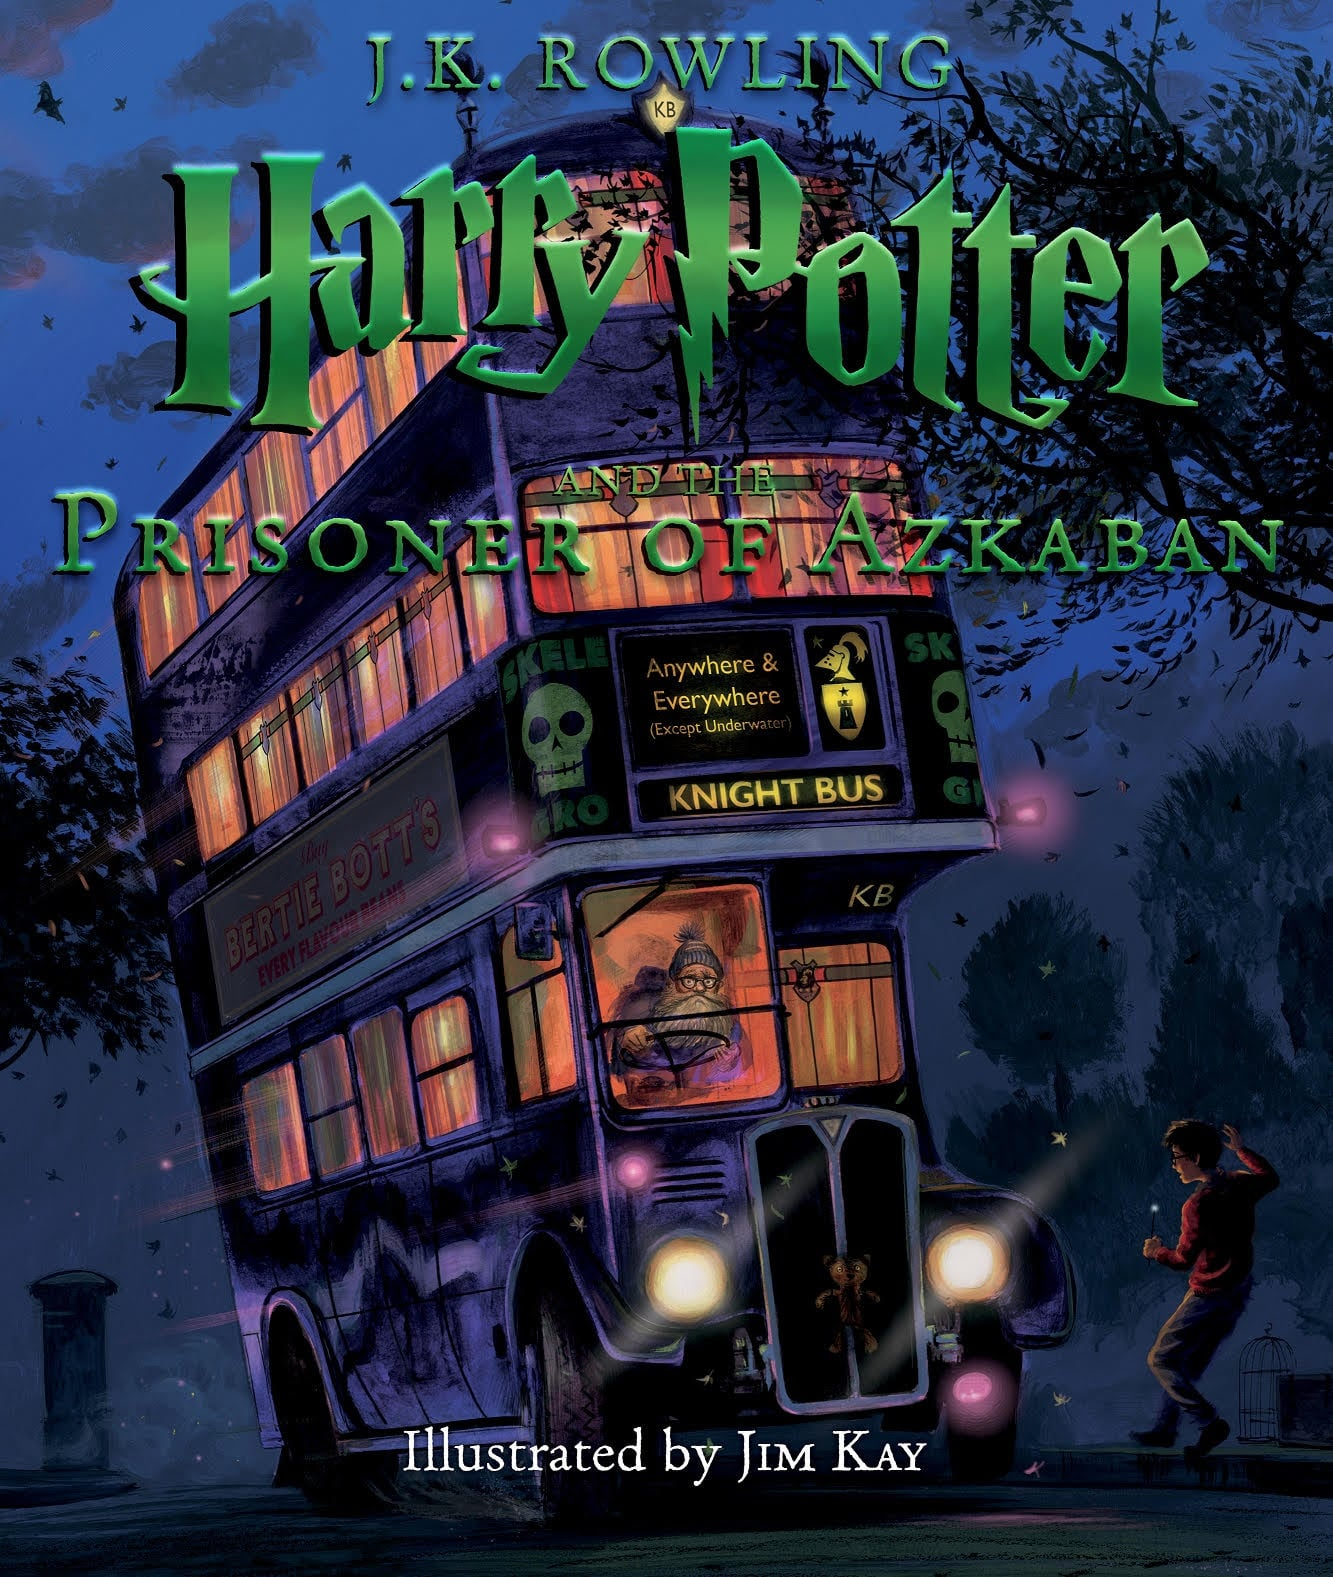 Illustrated Book Cover Version ~ Harry potter and the prisoner of azkaban illustrated cover